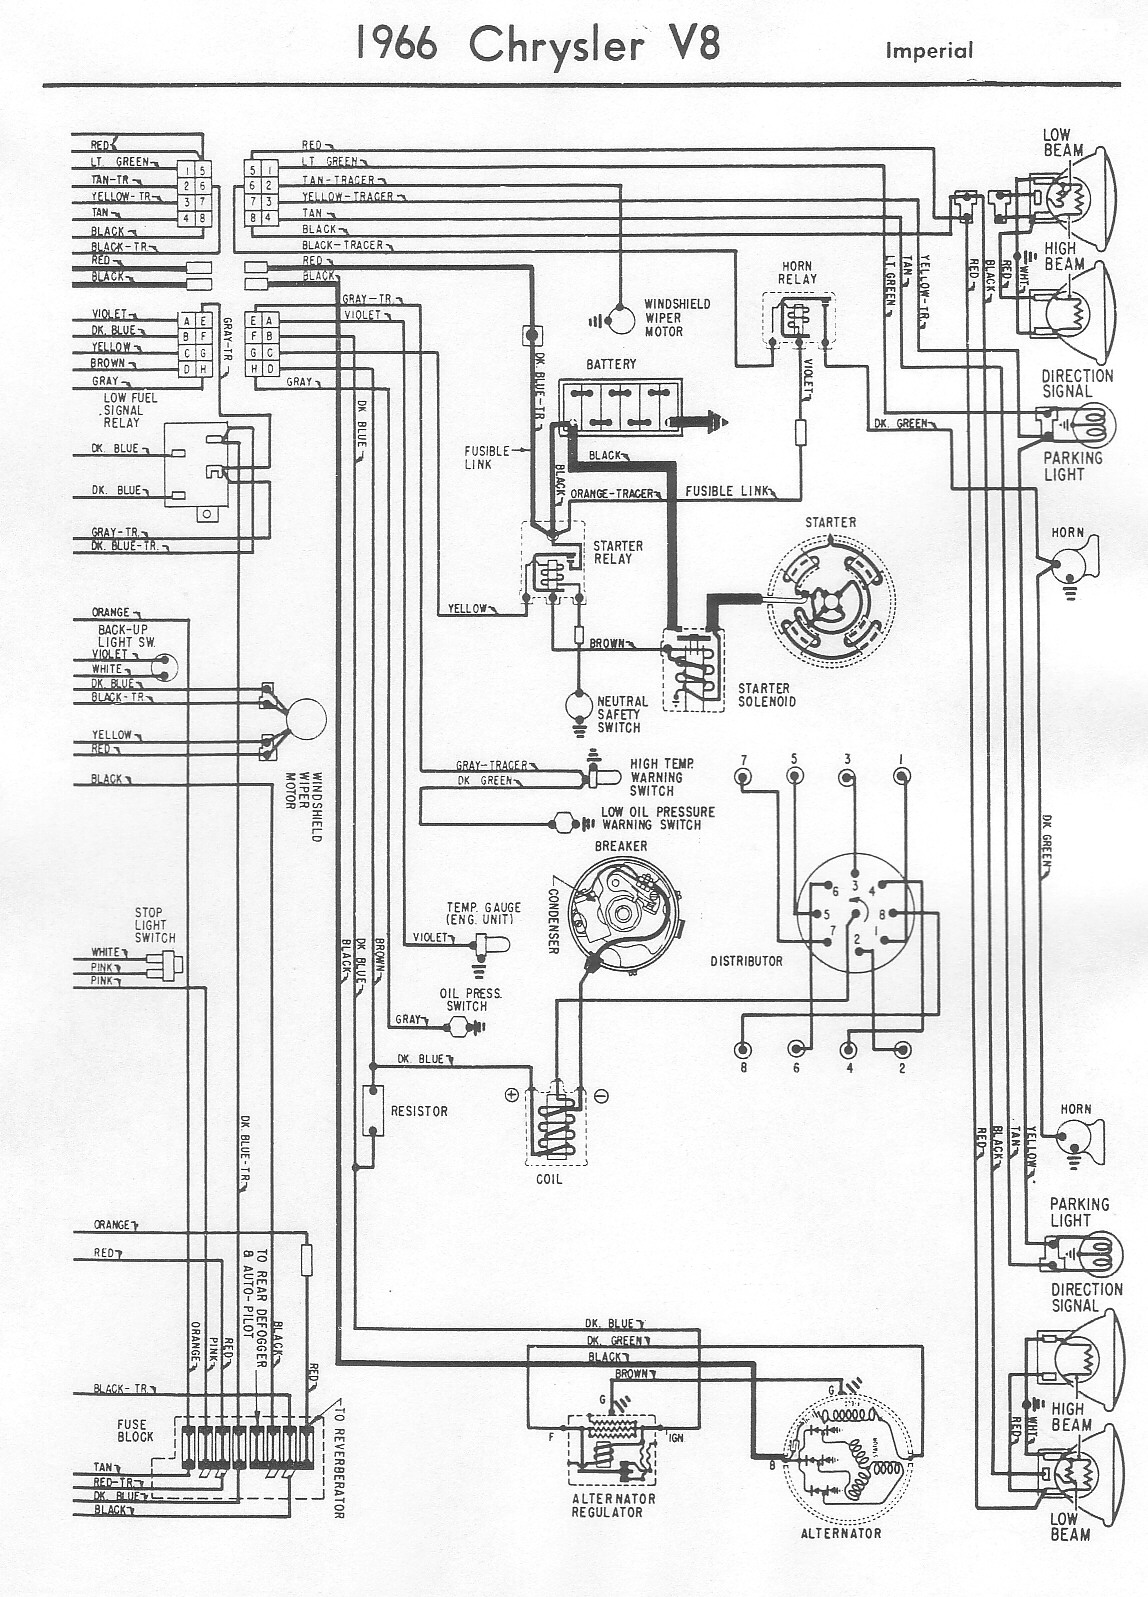 Chrysler Imperial Wiring Diagram on 1970 Gmc Truck Wiring Diagram